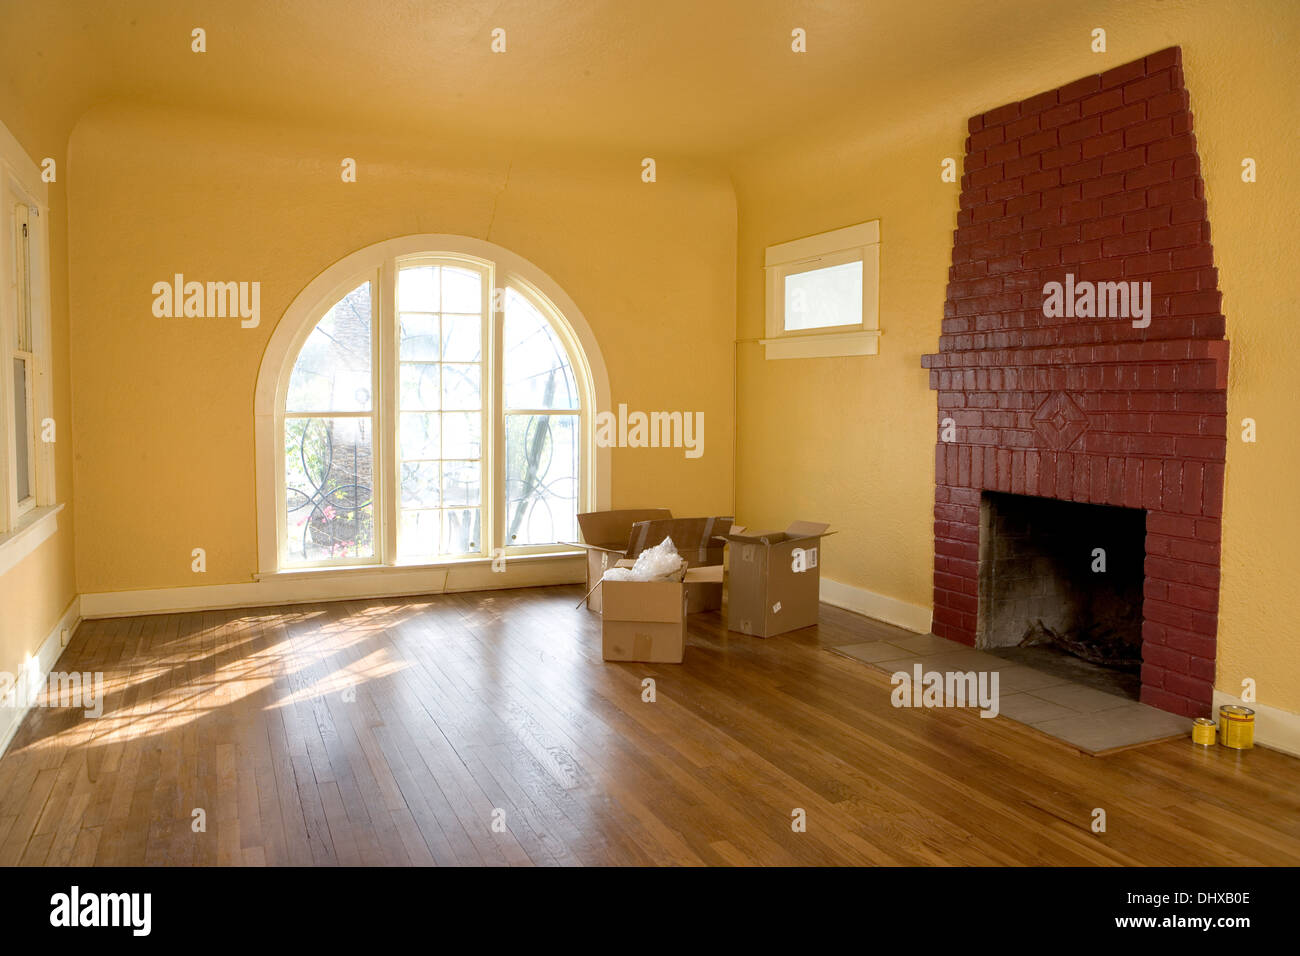 An empty room in a house with boxes for packing or unpacking - Stock Image